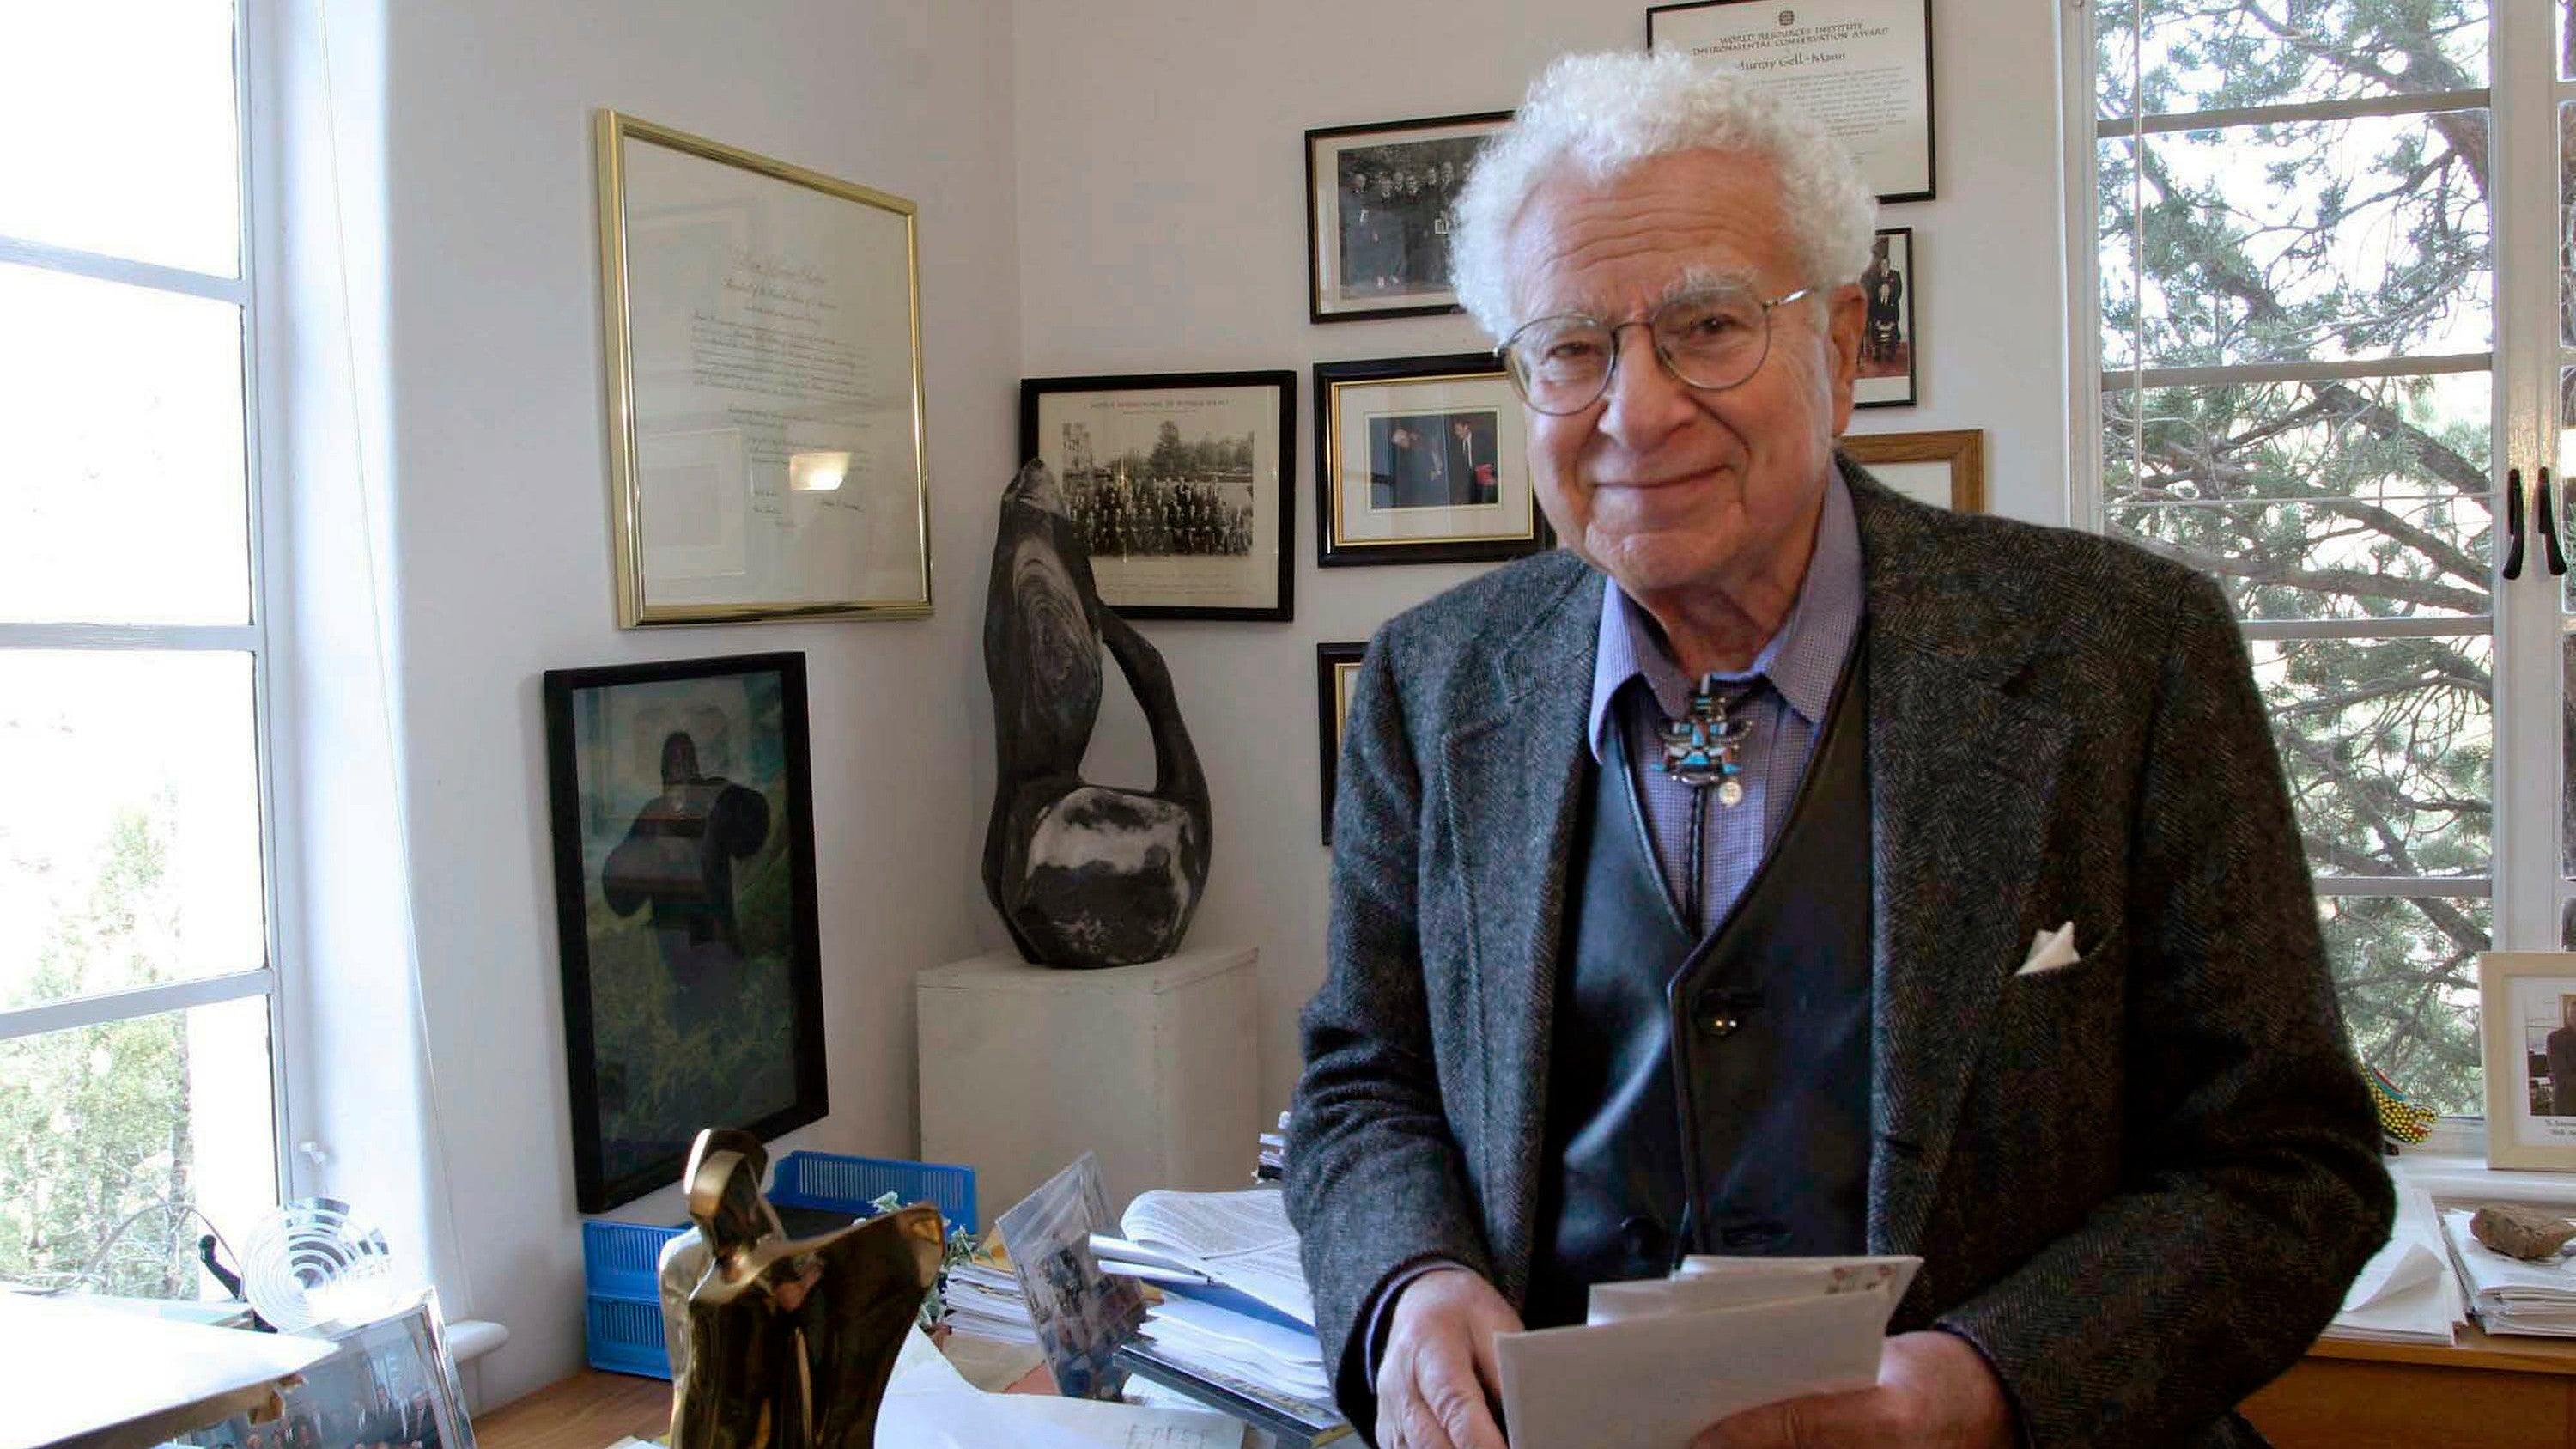 Murray Gell-Mann, The Physicist Who Came Up With Quarks, Has Died